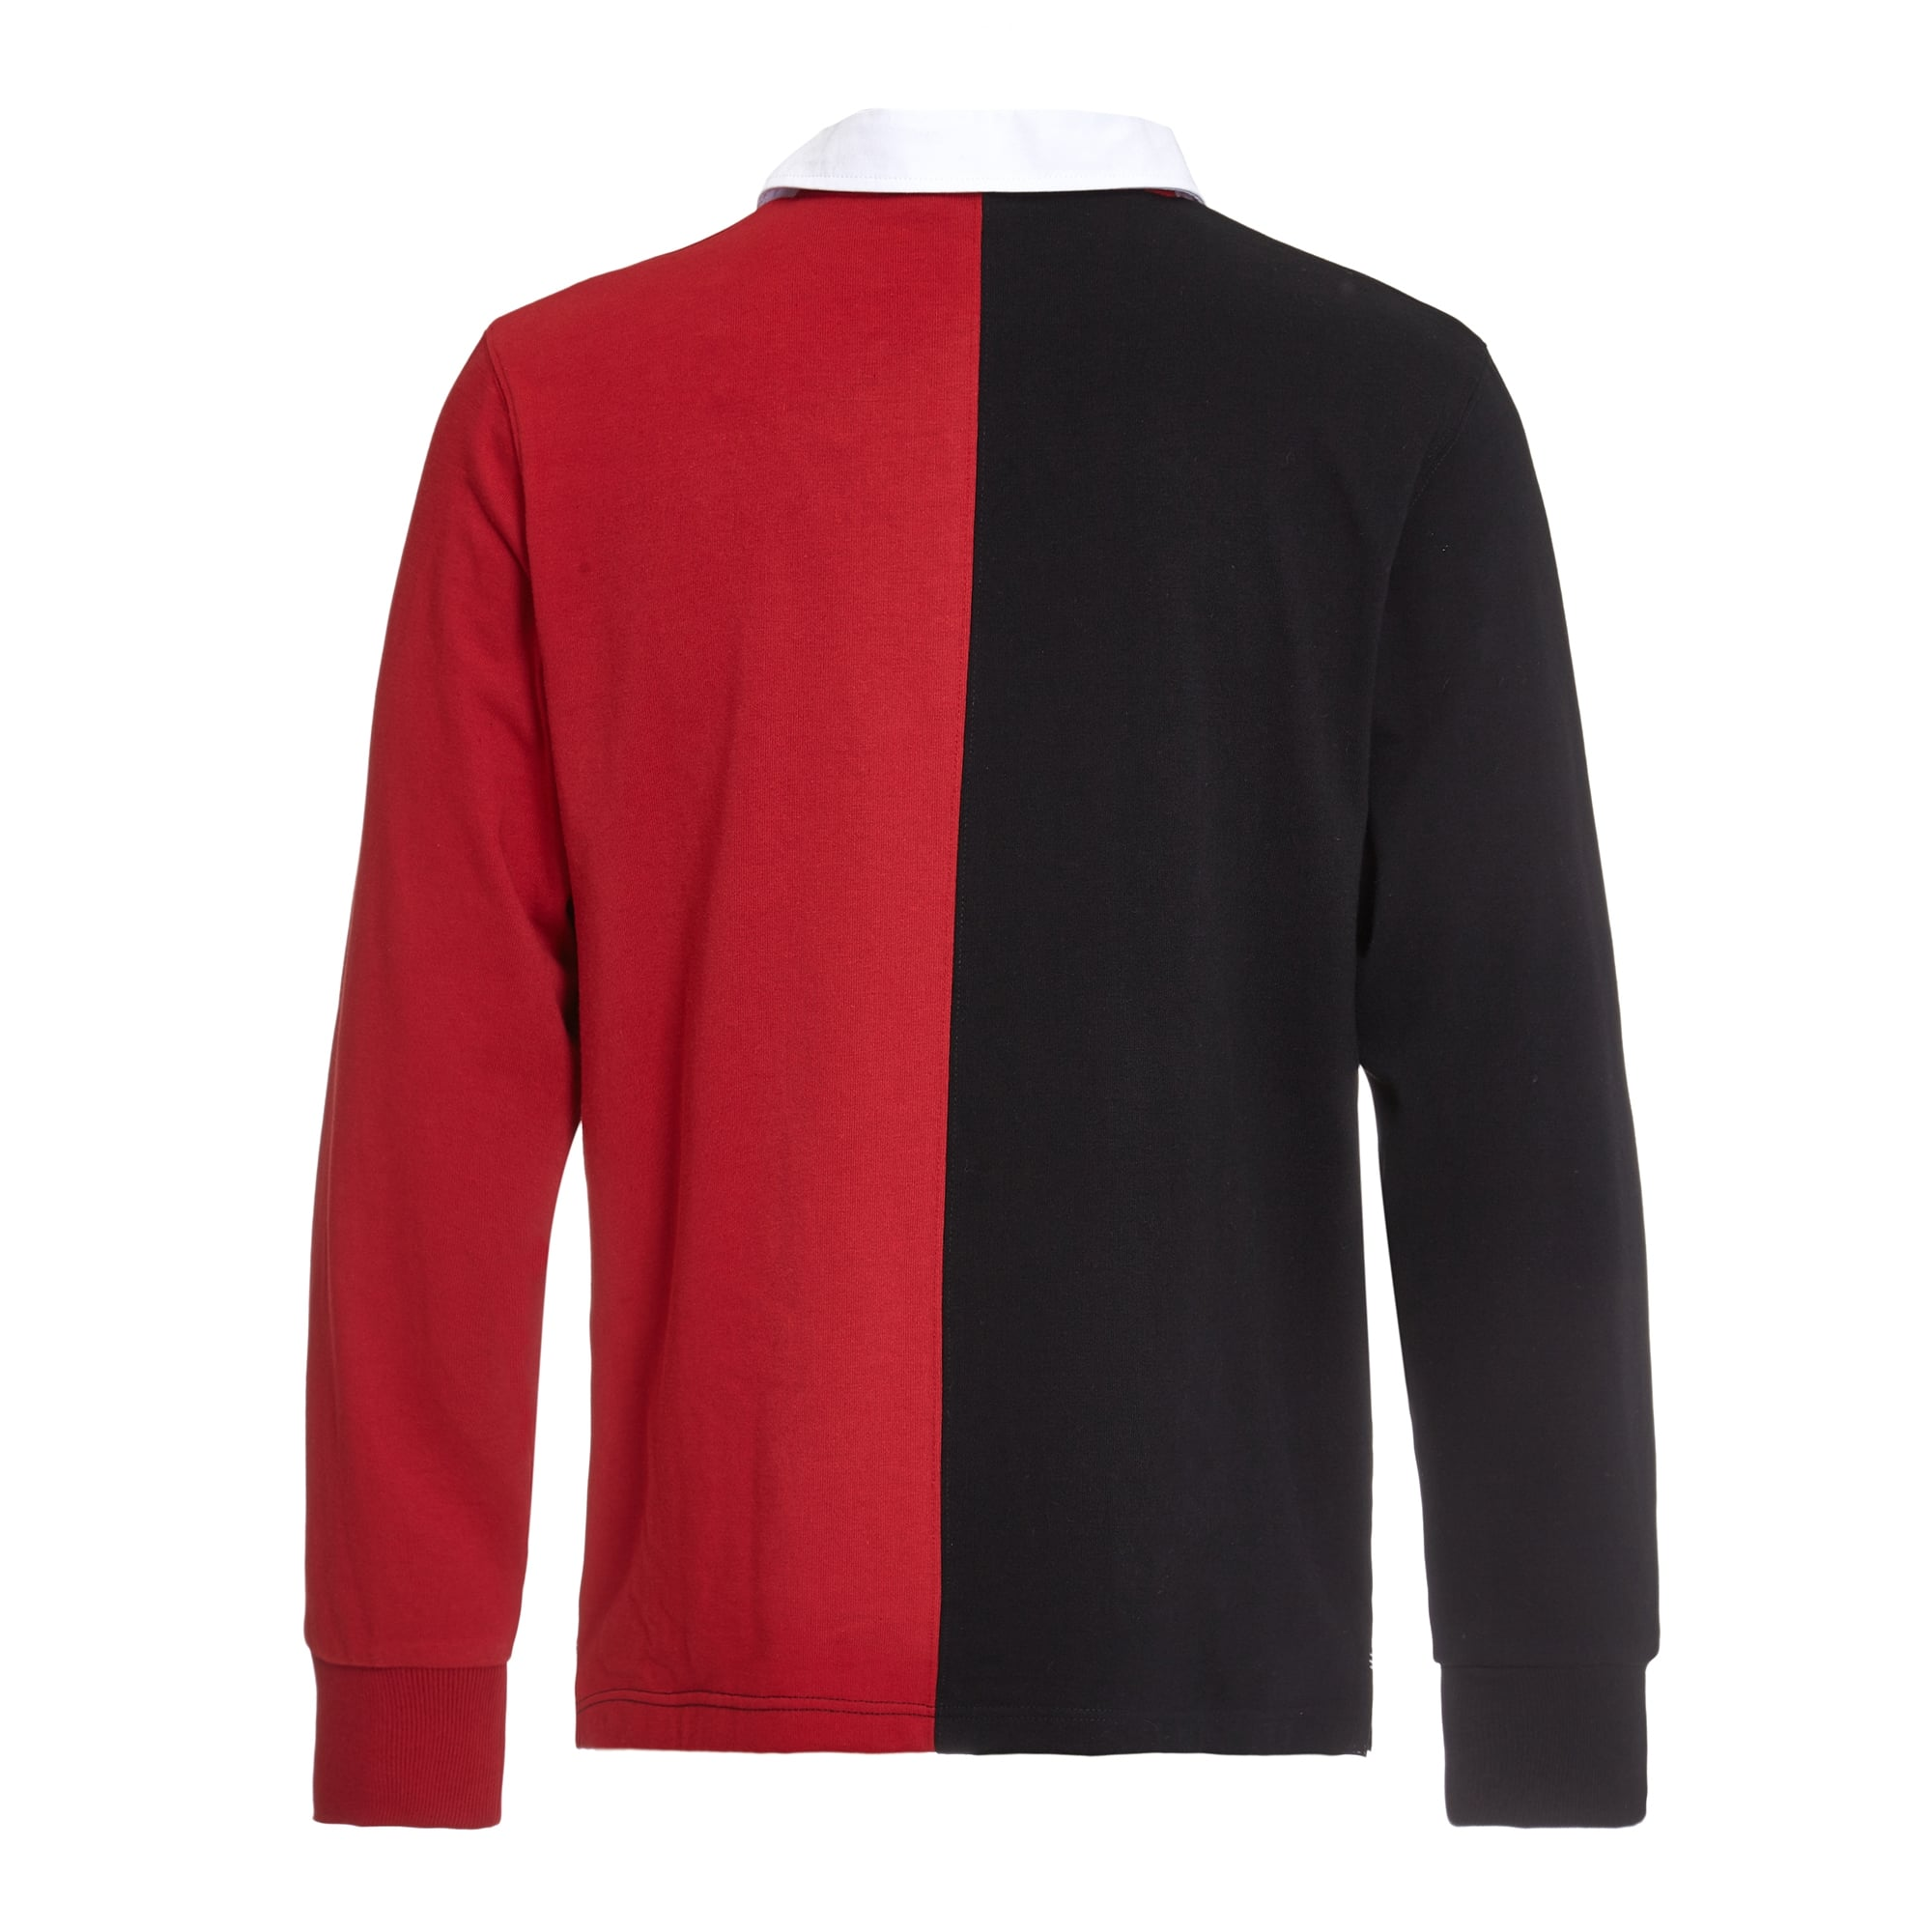 Red Long Sleeve Rugby Shirt With White Collar Bcd Tofu House